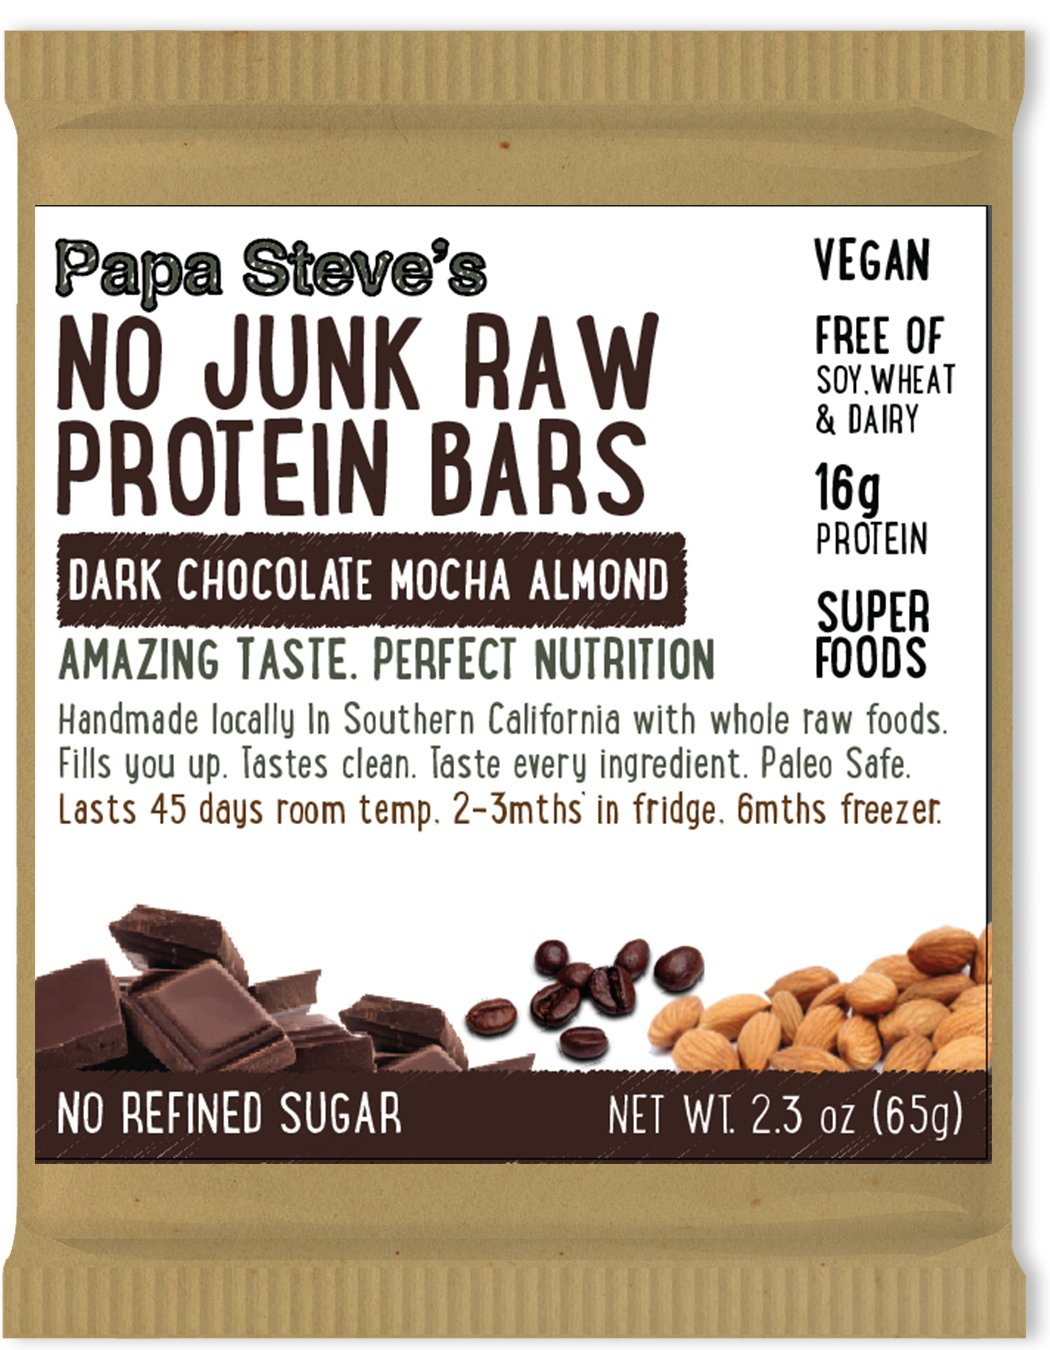 Papa Steve's No Junk Raw Protein Bar